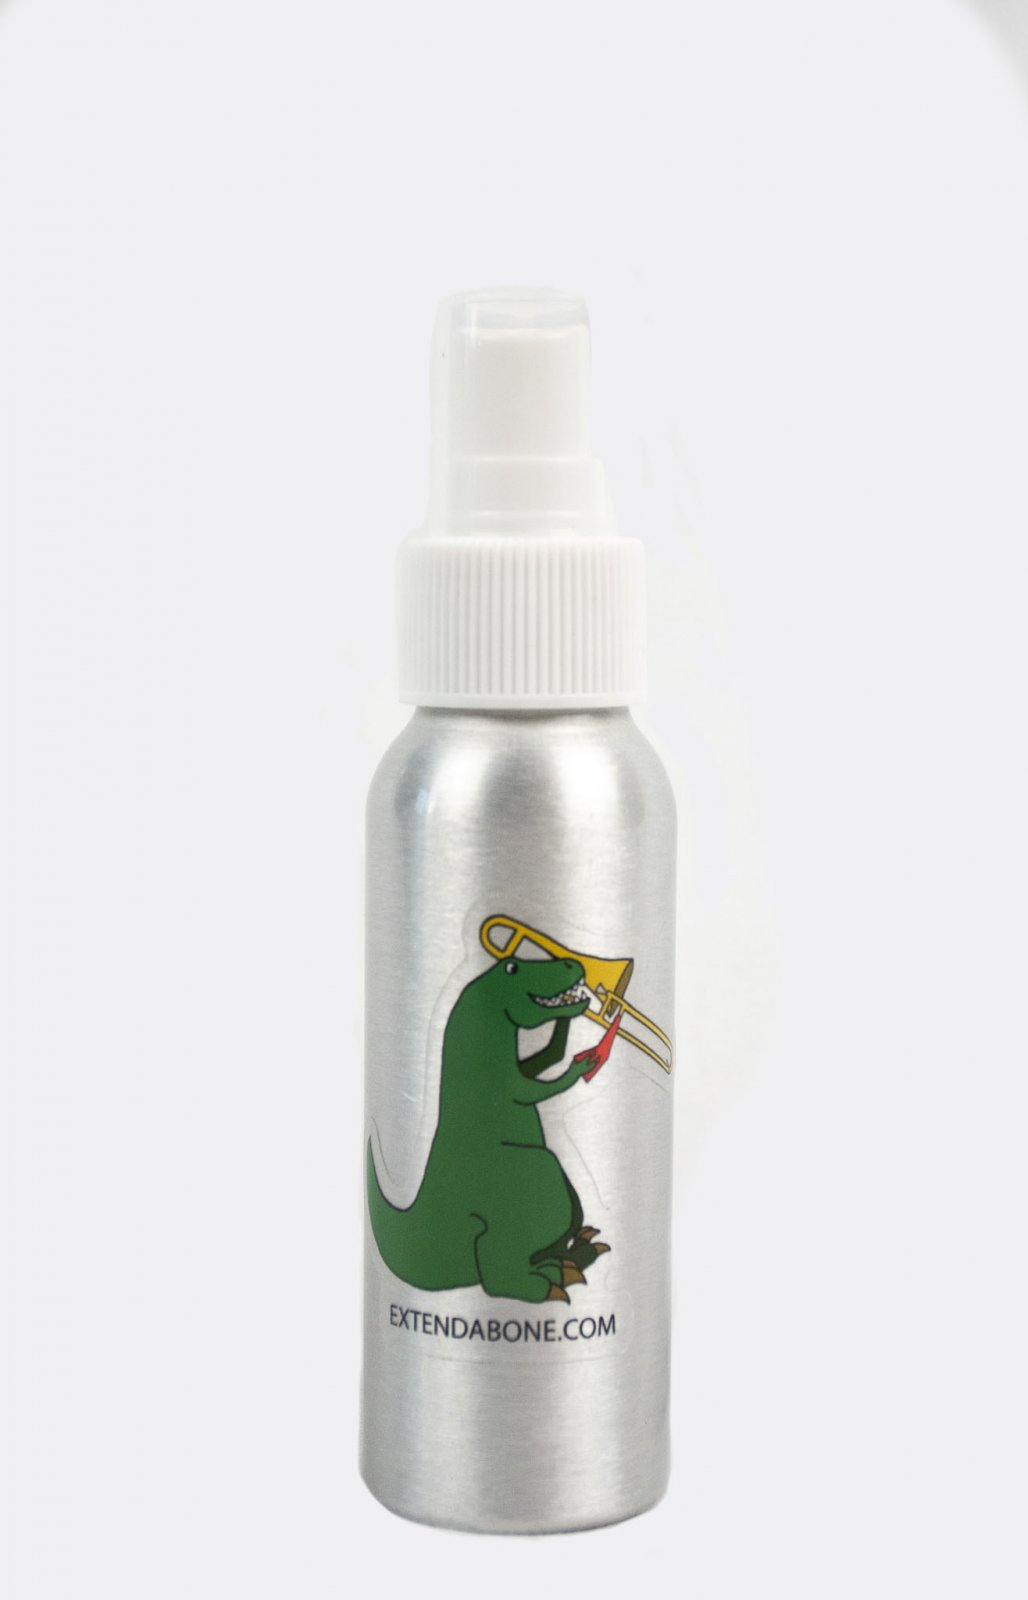 Extendabone - Aluminum Spray Bottle